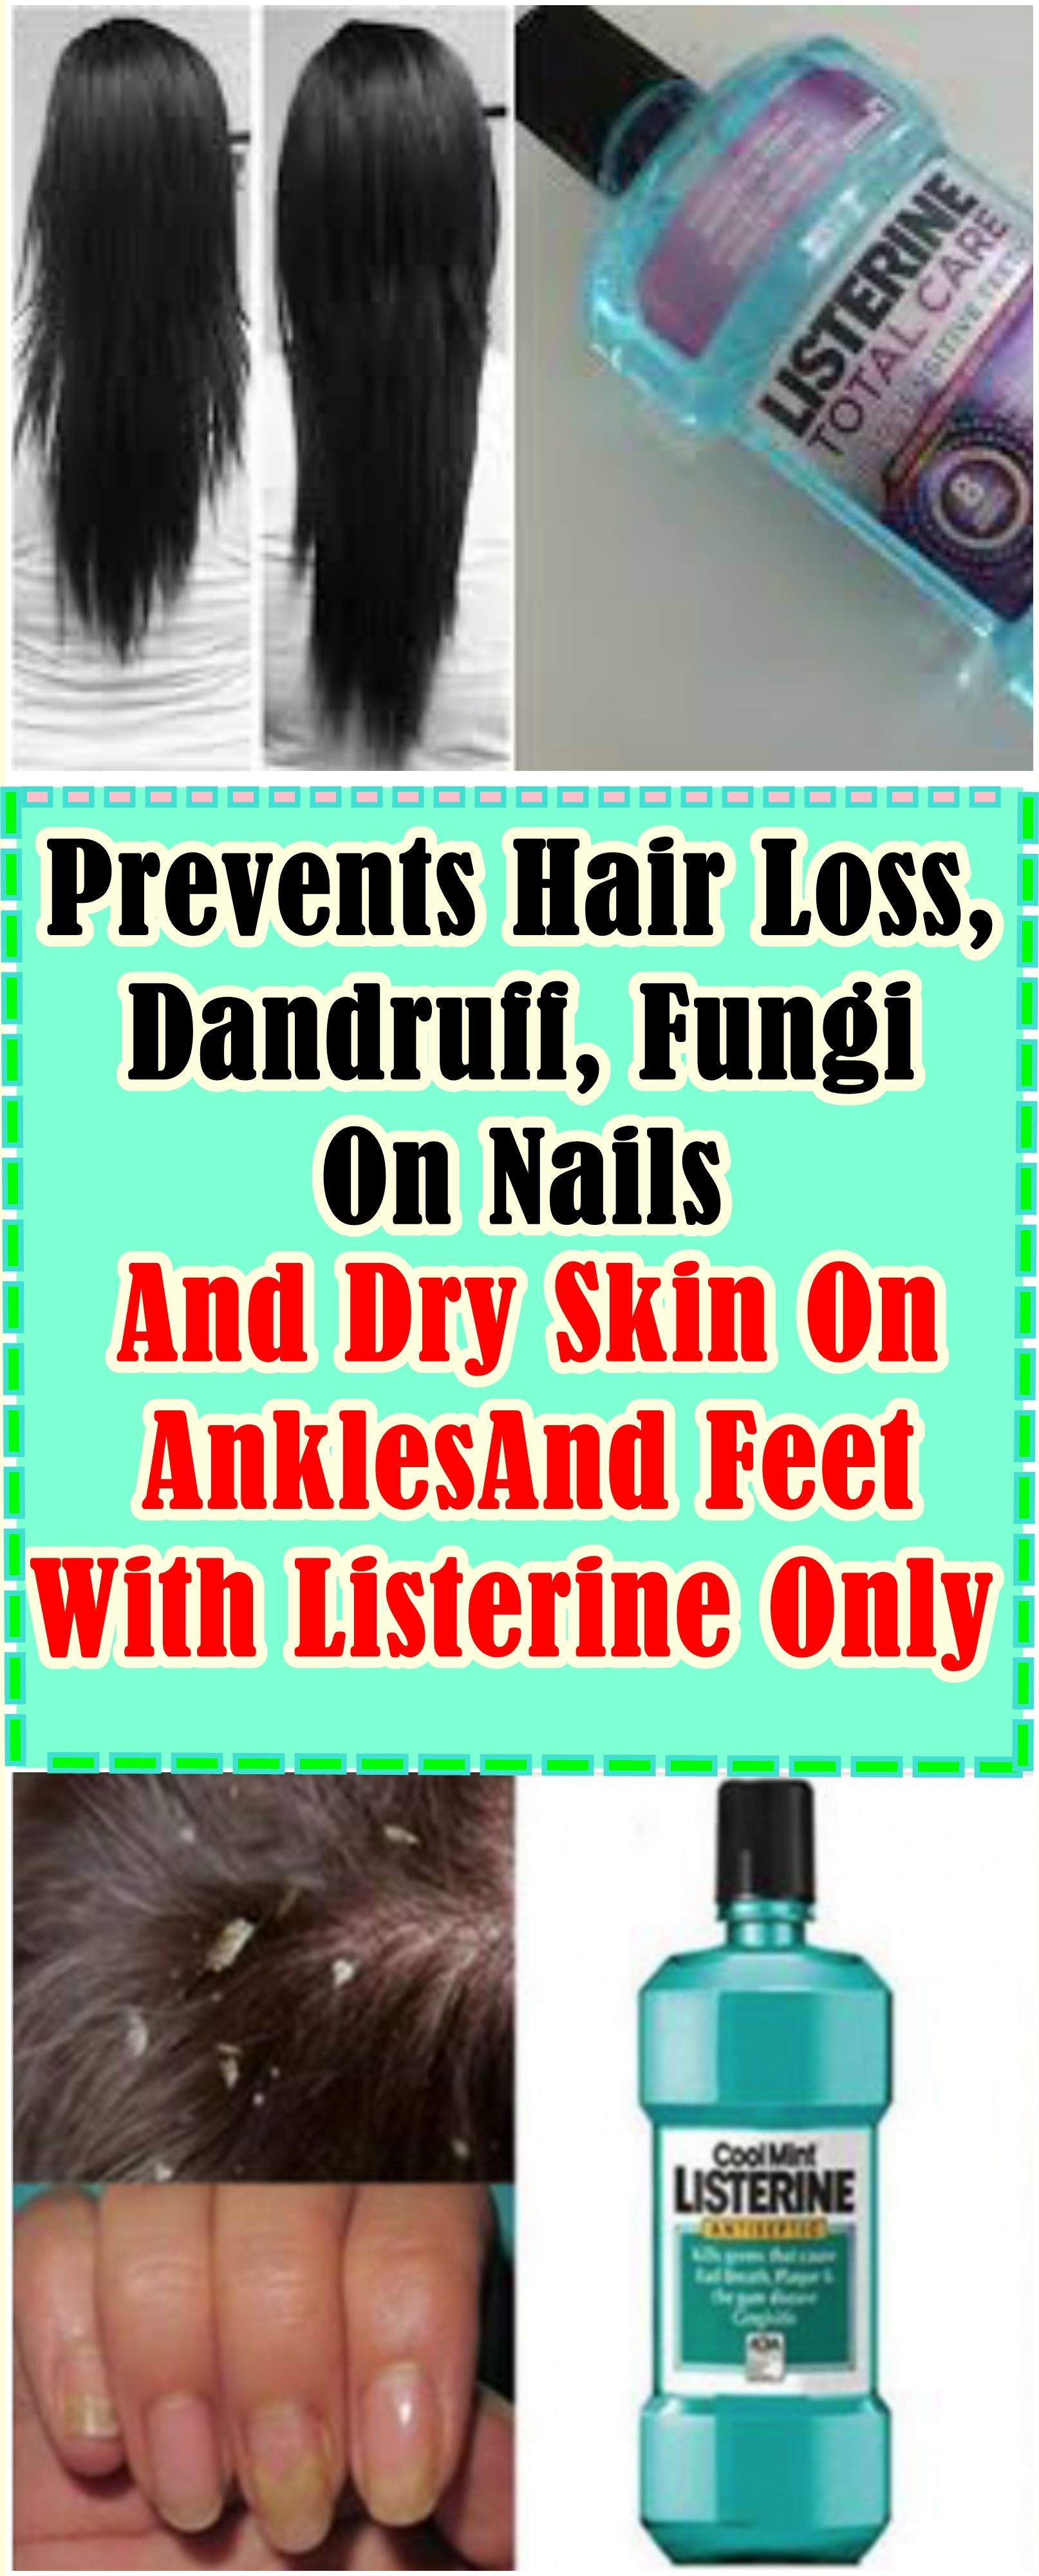 Prevents Hair Loss Dandruff Fungi On Nails And Dry Skin On Ankles